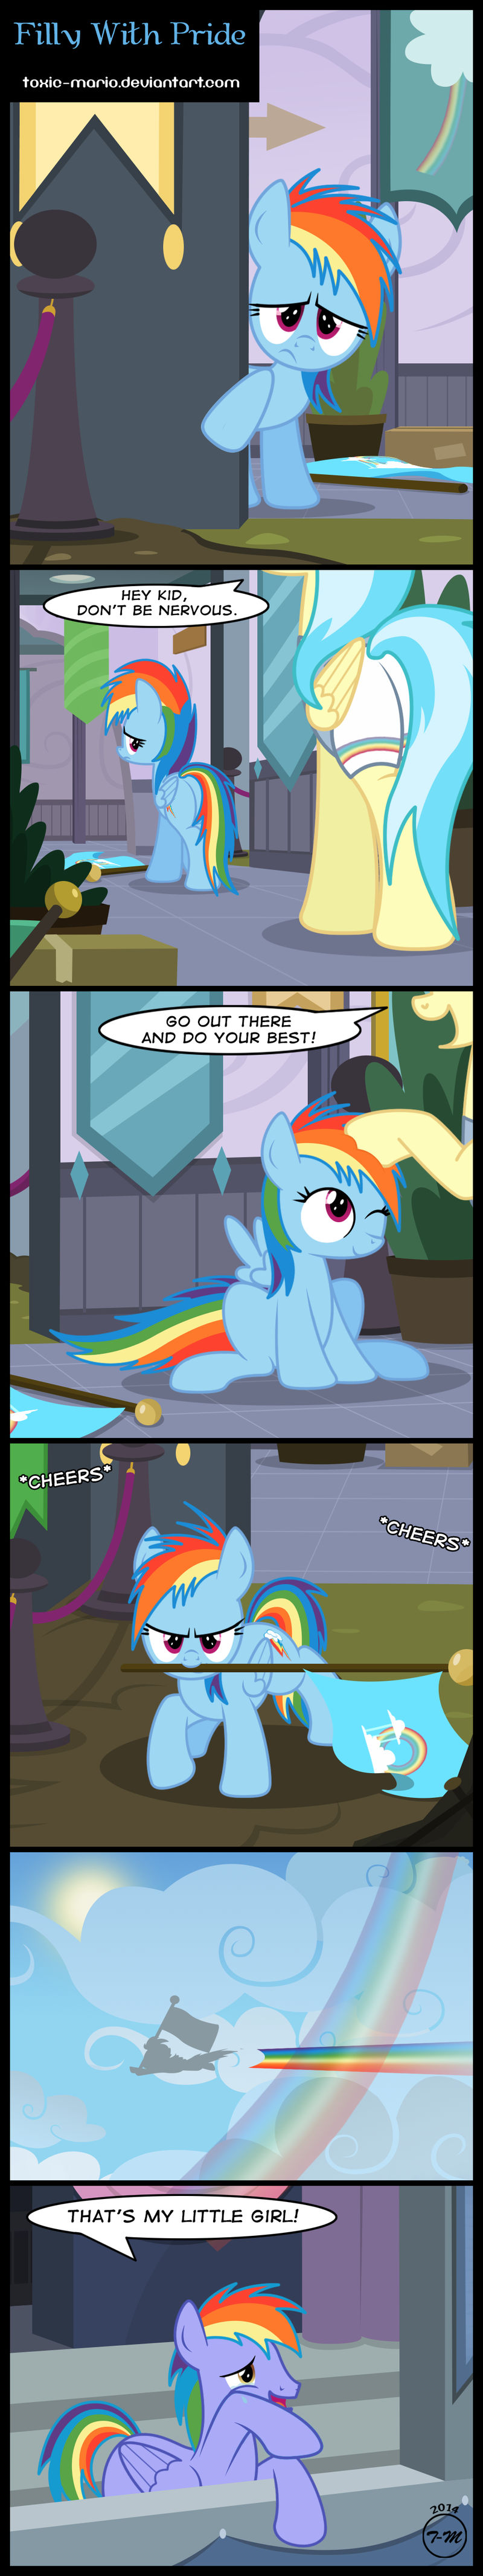 Filly With Pride